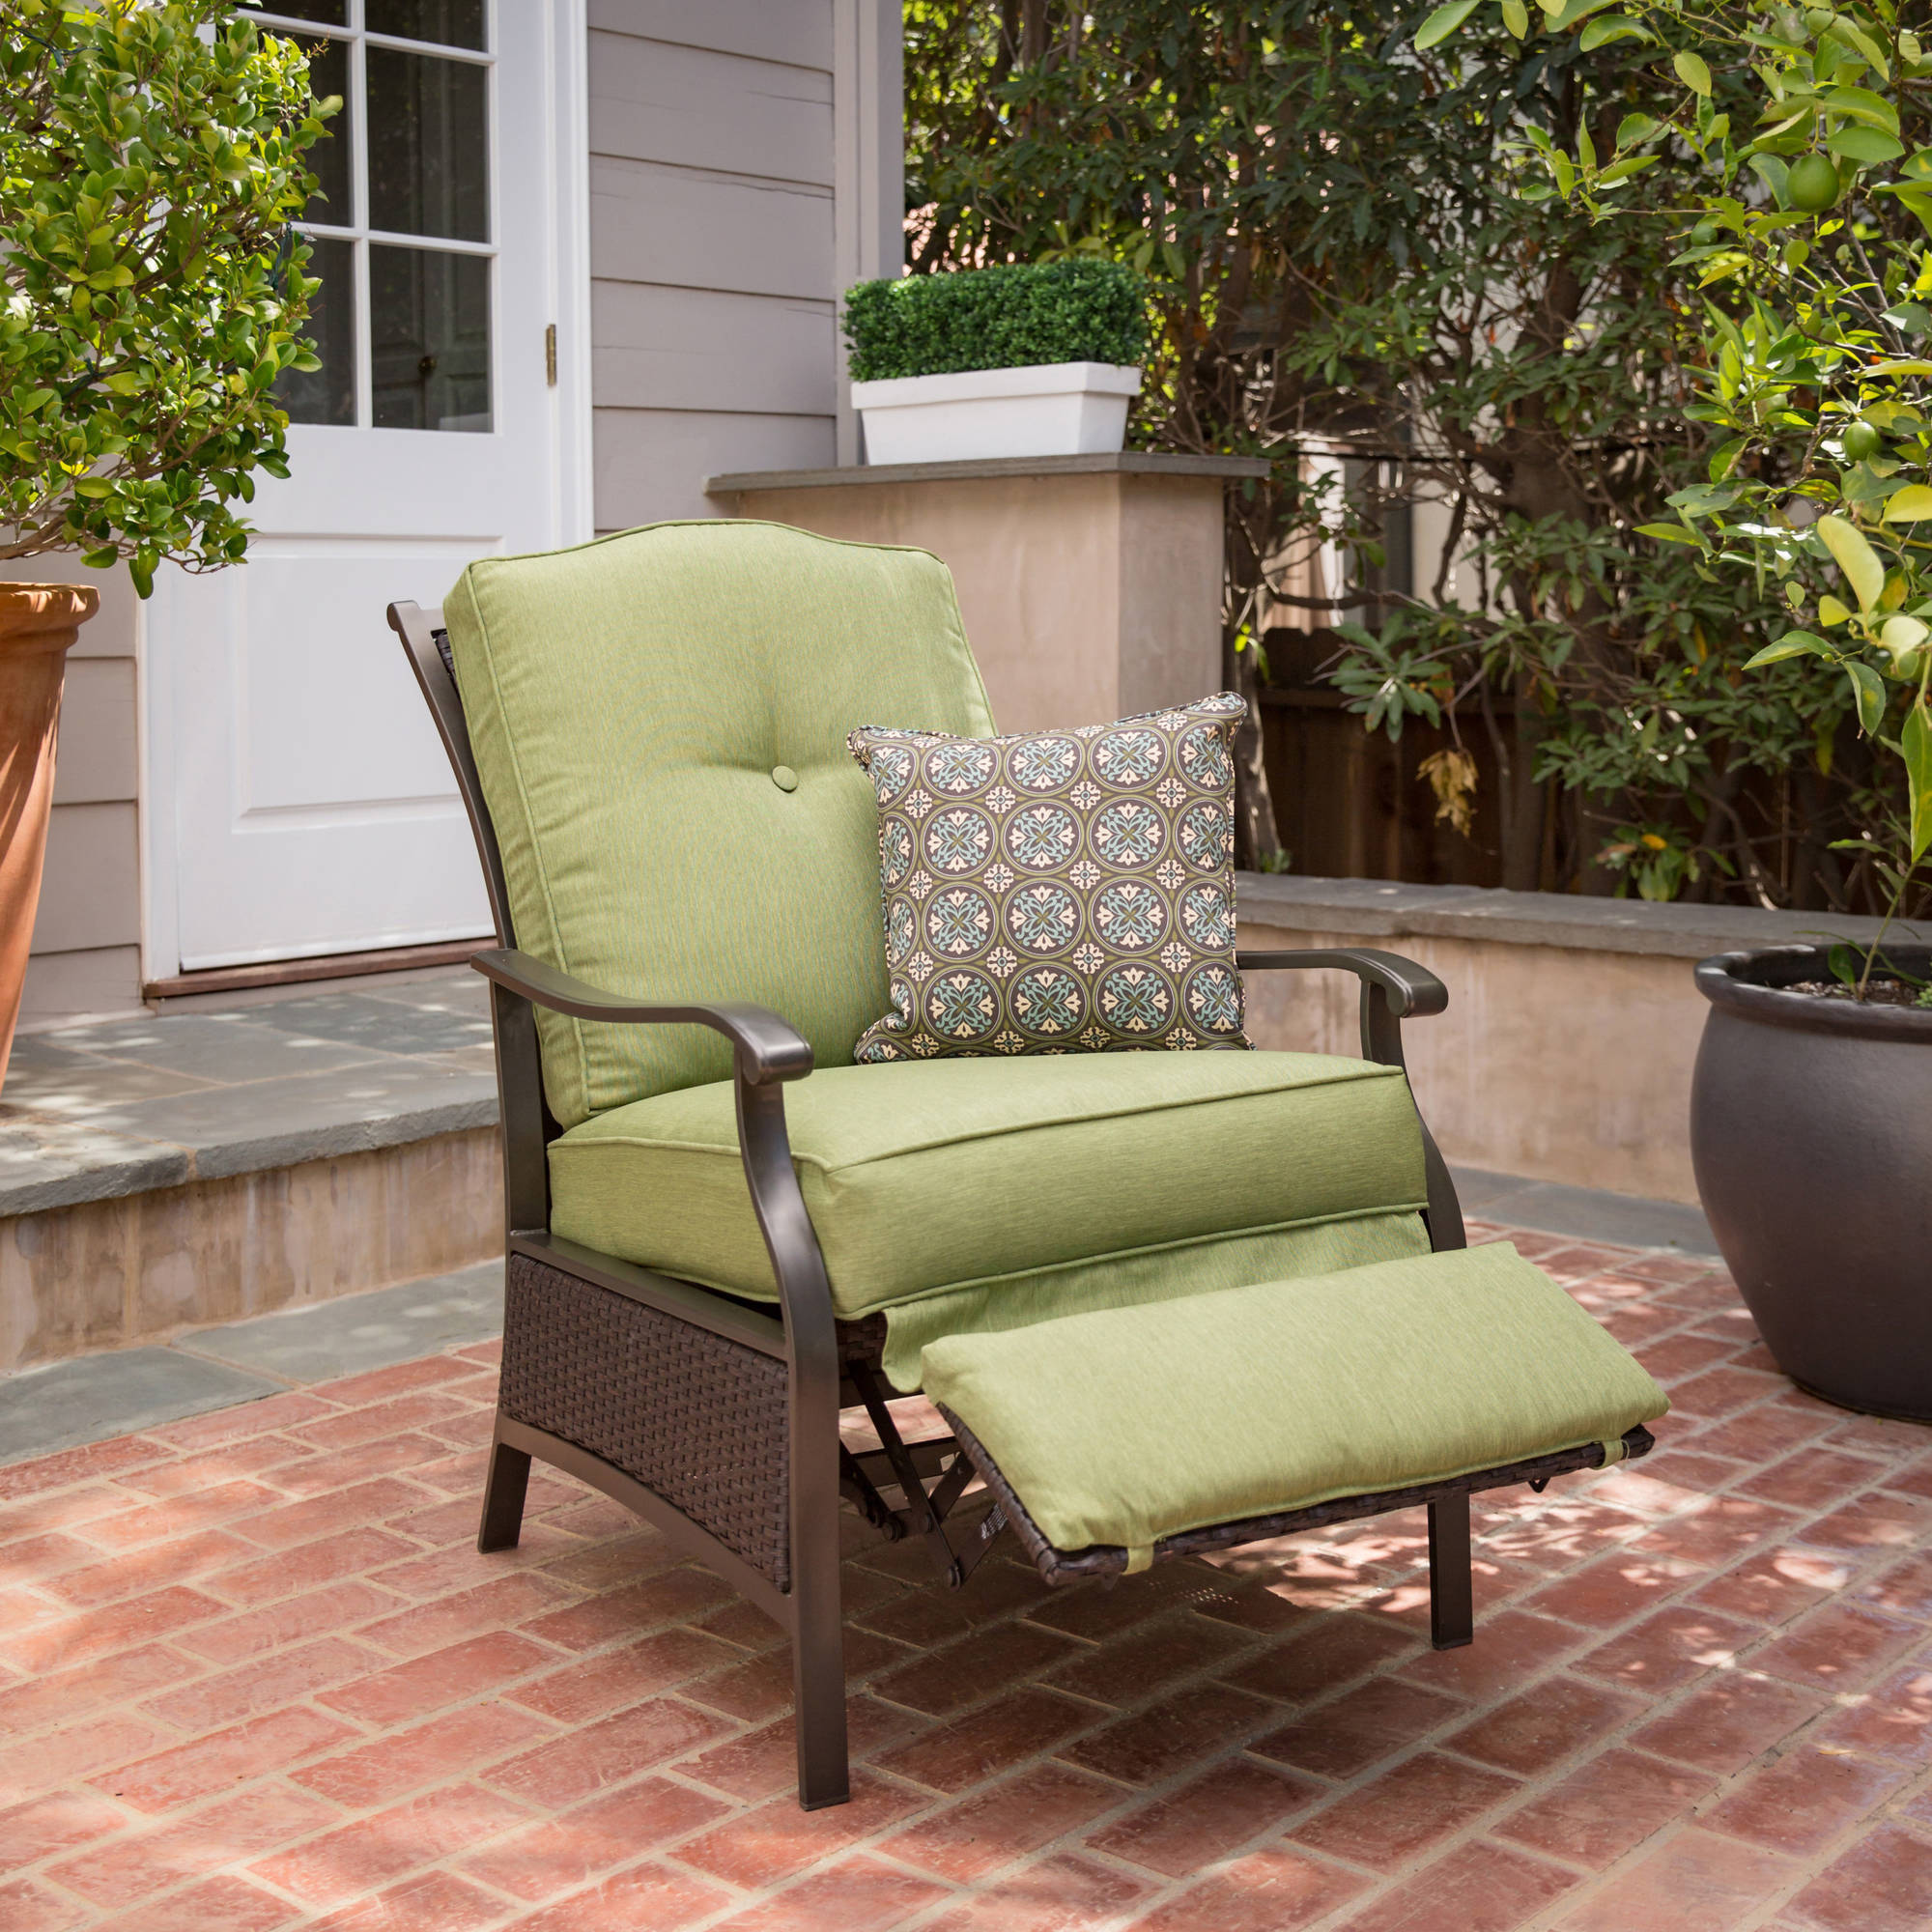 Garden Furniture Chairs patio furniture - walmart